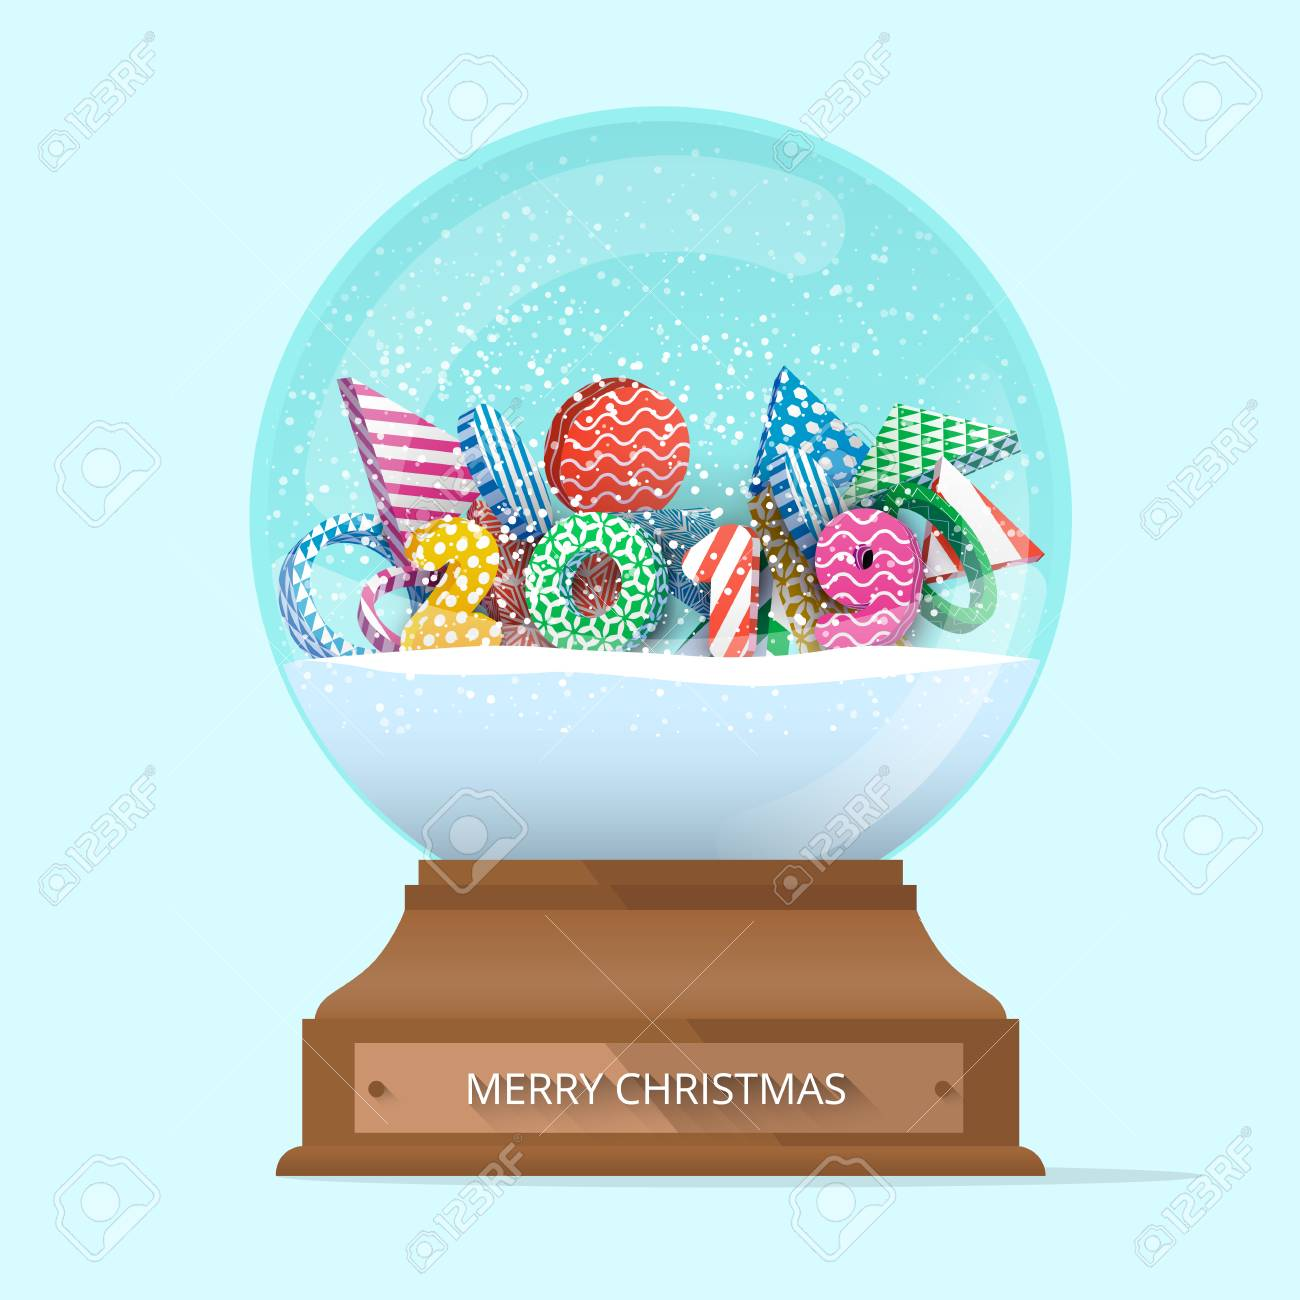 Snow On Christmas 2019 Green Isolated Merry Christmas 2019 Snow Globe. Greeting Card